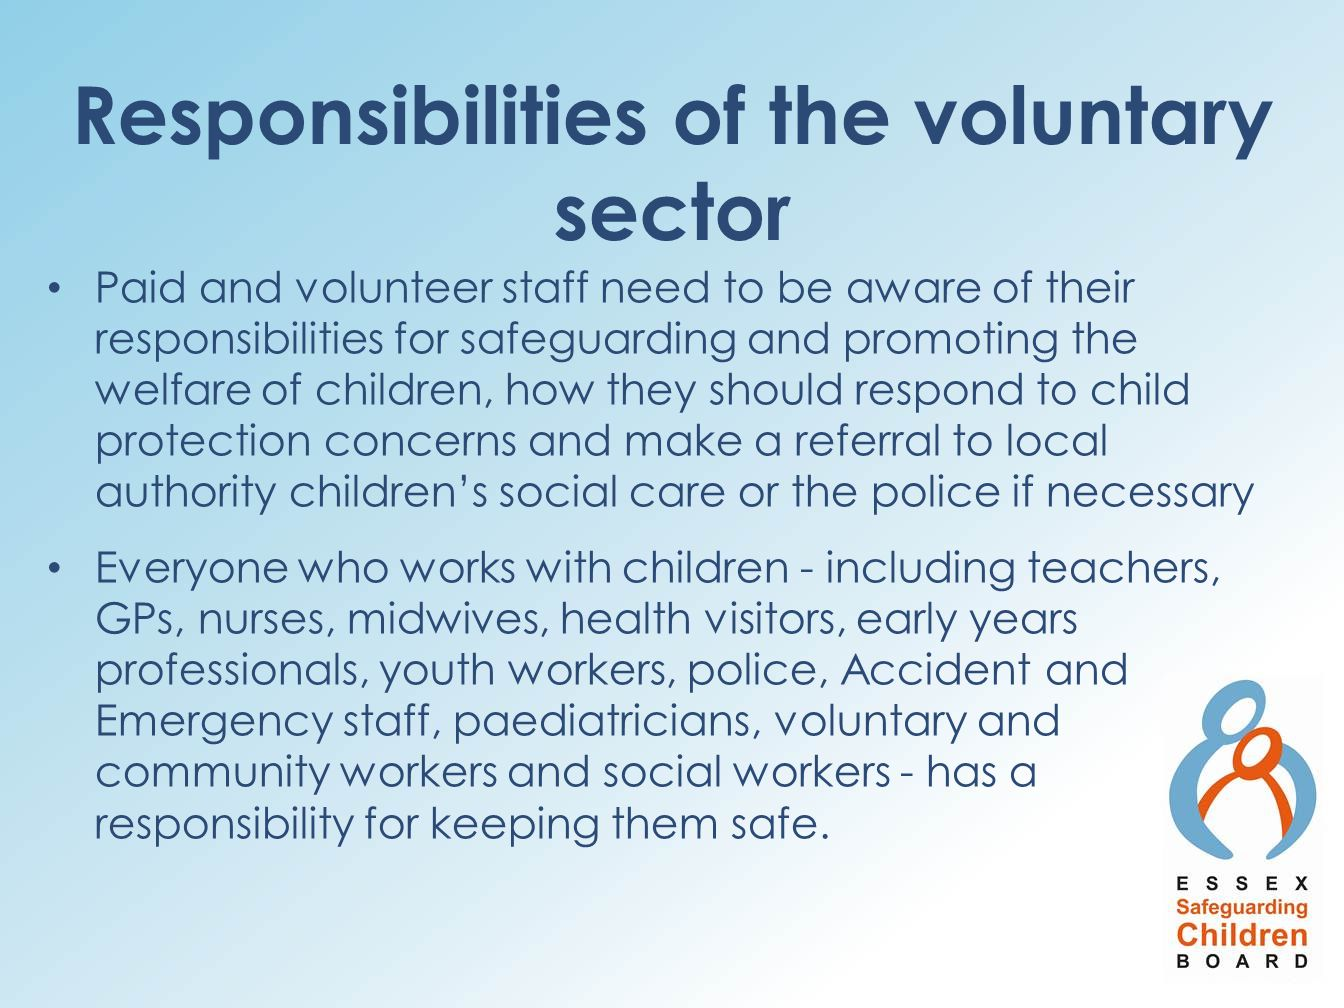 Responsibilities of the voluntary sector